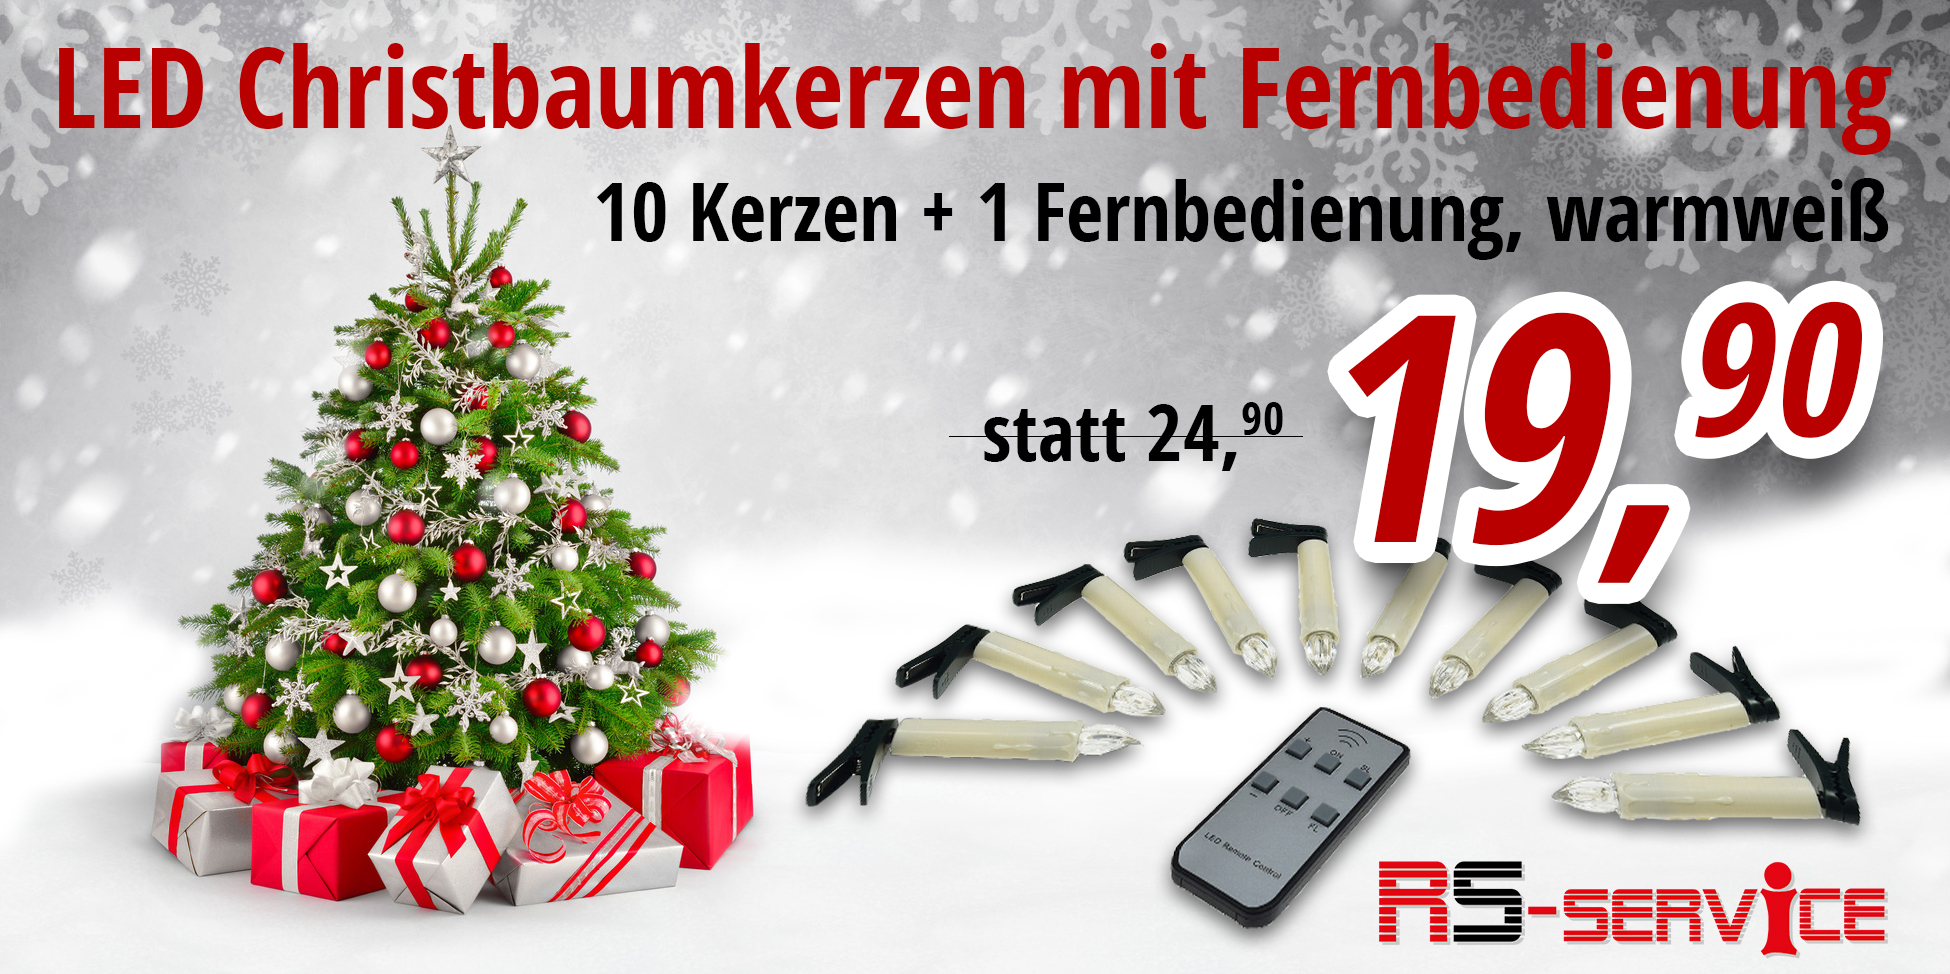 banner led christbaum beleuchtung rs service. Black Bedroom Furniture Sets. Home Design Ideas